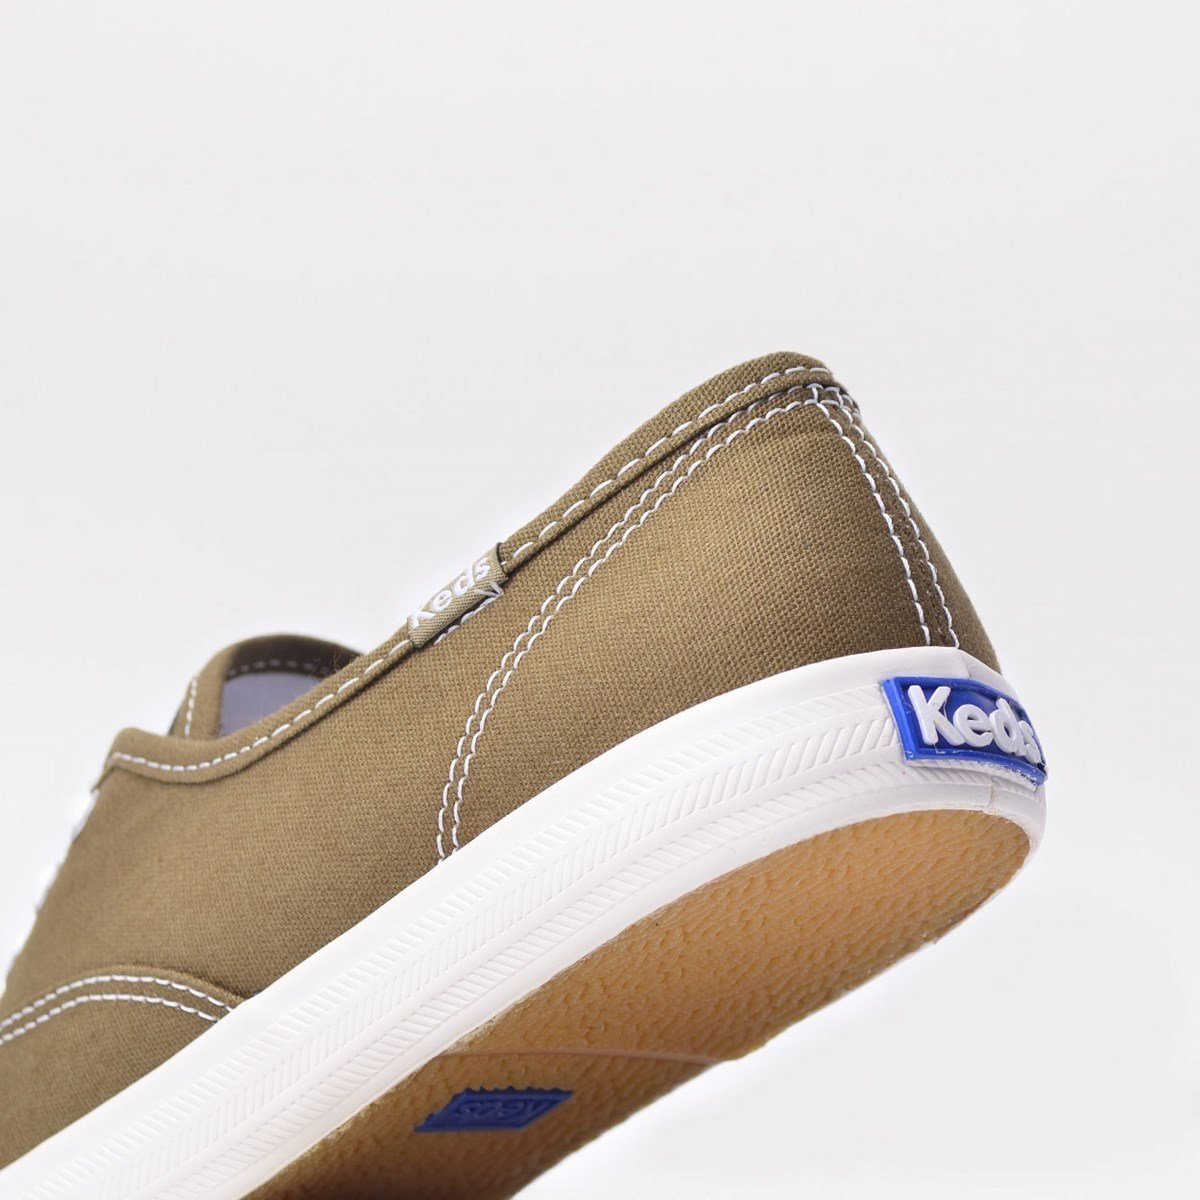 Verde Verde Tênis Canvas Keds Champion Canvas Champion Tênis Keds Tênis Woman Keds Woman Champion OWaq1YEWw